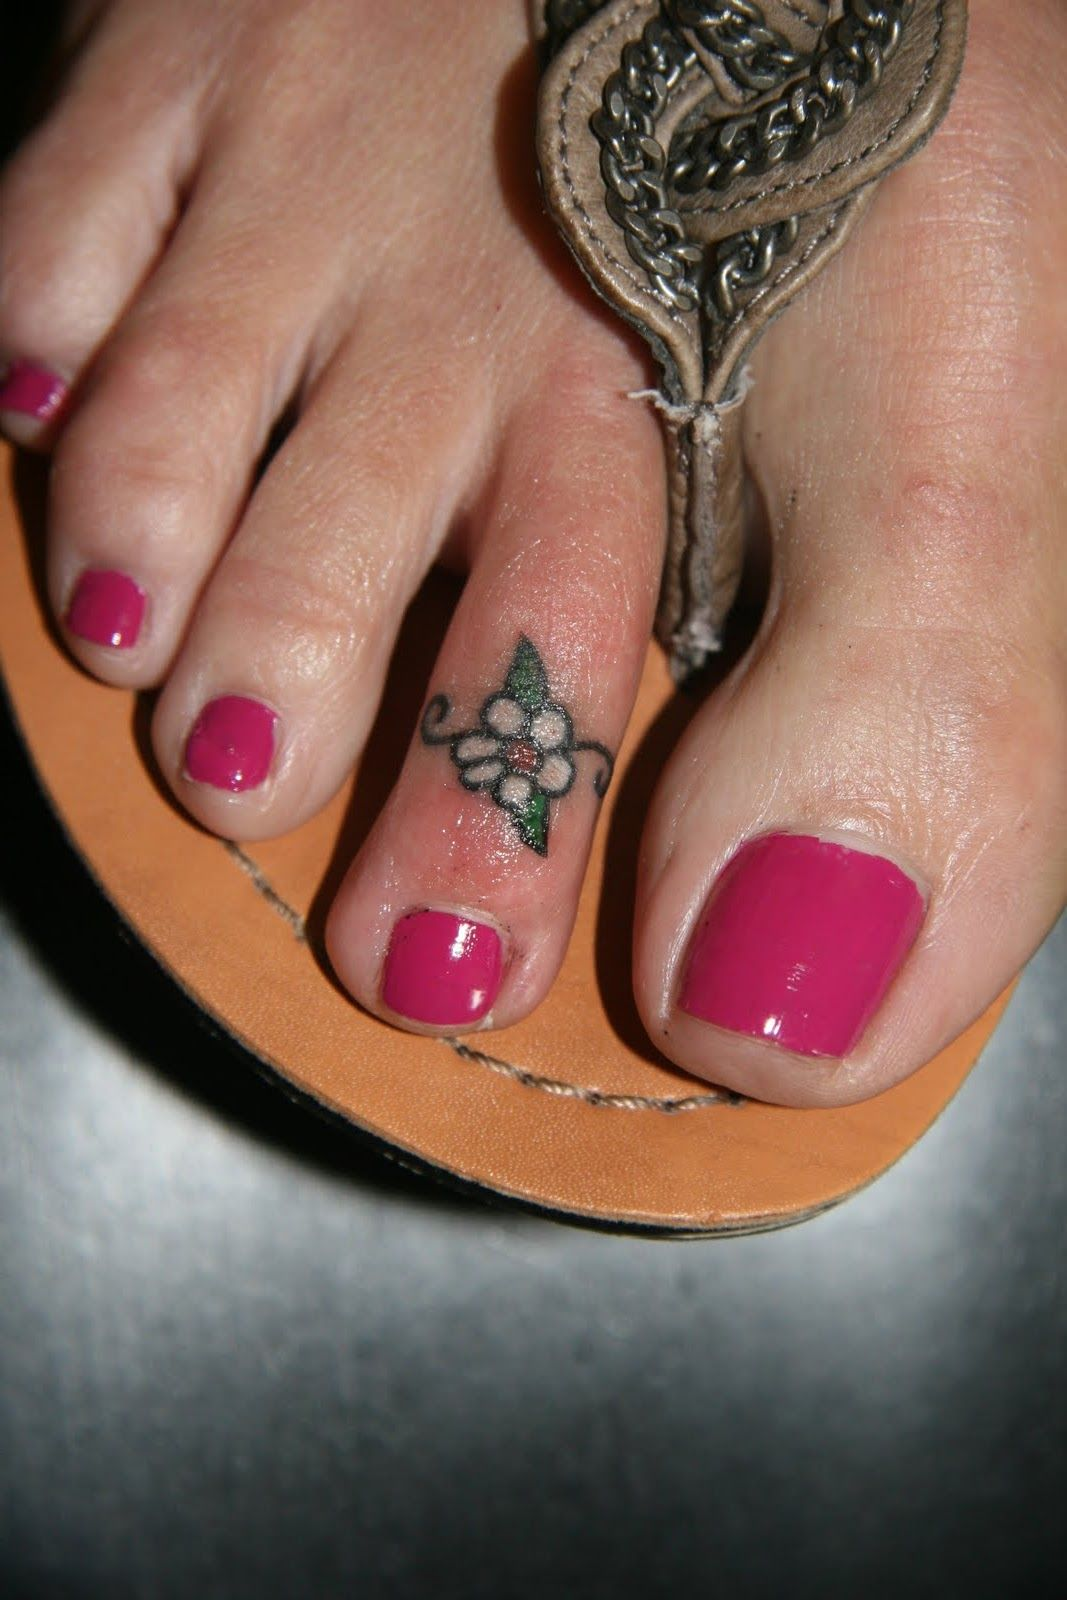 Cute Tat Toe Ring Tattoos Toe Tattoos Tattoos